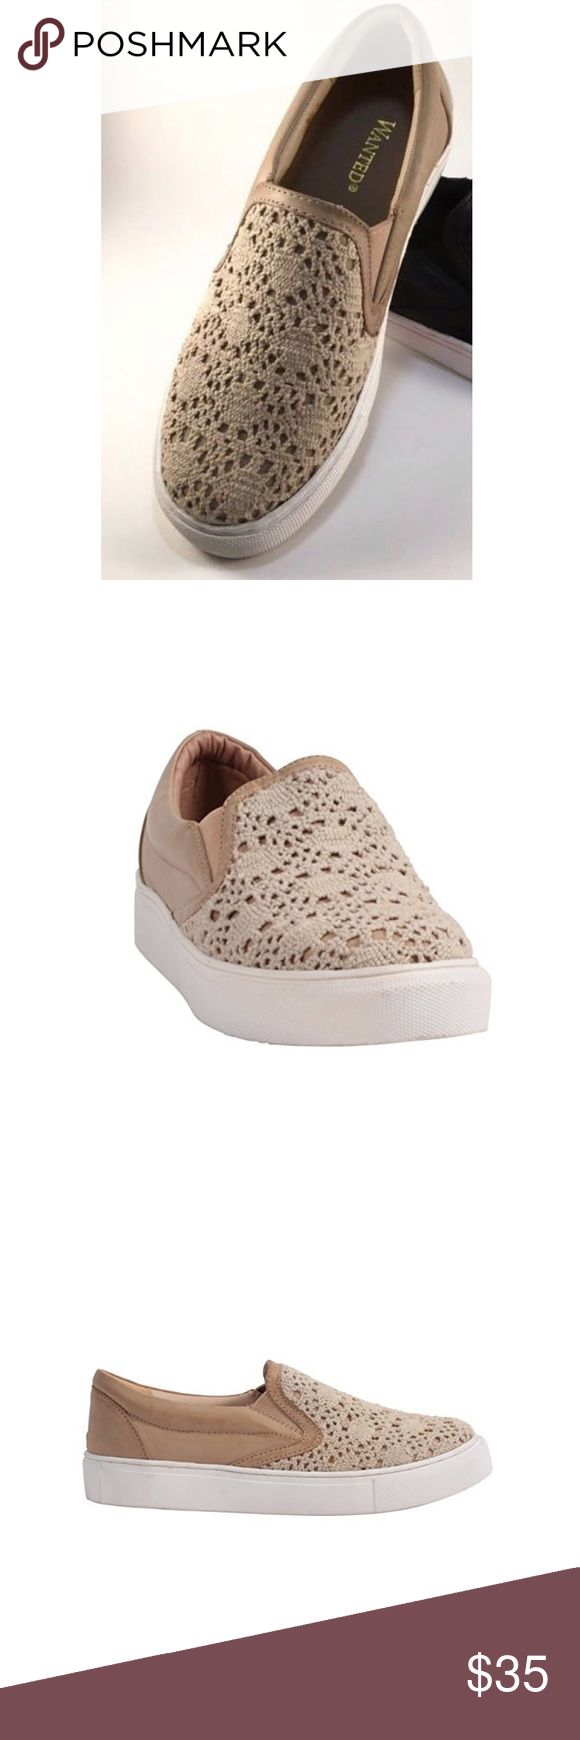 Nude Crochet Lace Slip On Espadrilles Lace nude slip on sneaker features: a macramé upper. These sneakers are a perfect shoe, for a multi-seasonal vibe that flatters every woman. Pair these sneakers up with jeans for a more casual look, dress pants for a smart casual look or if you're looking for a flirty and girly look, put on a skater skirt or flowy dress. Boutique Shoes Sneakers